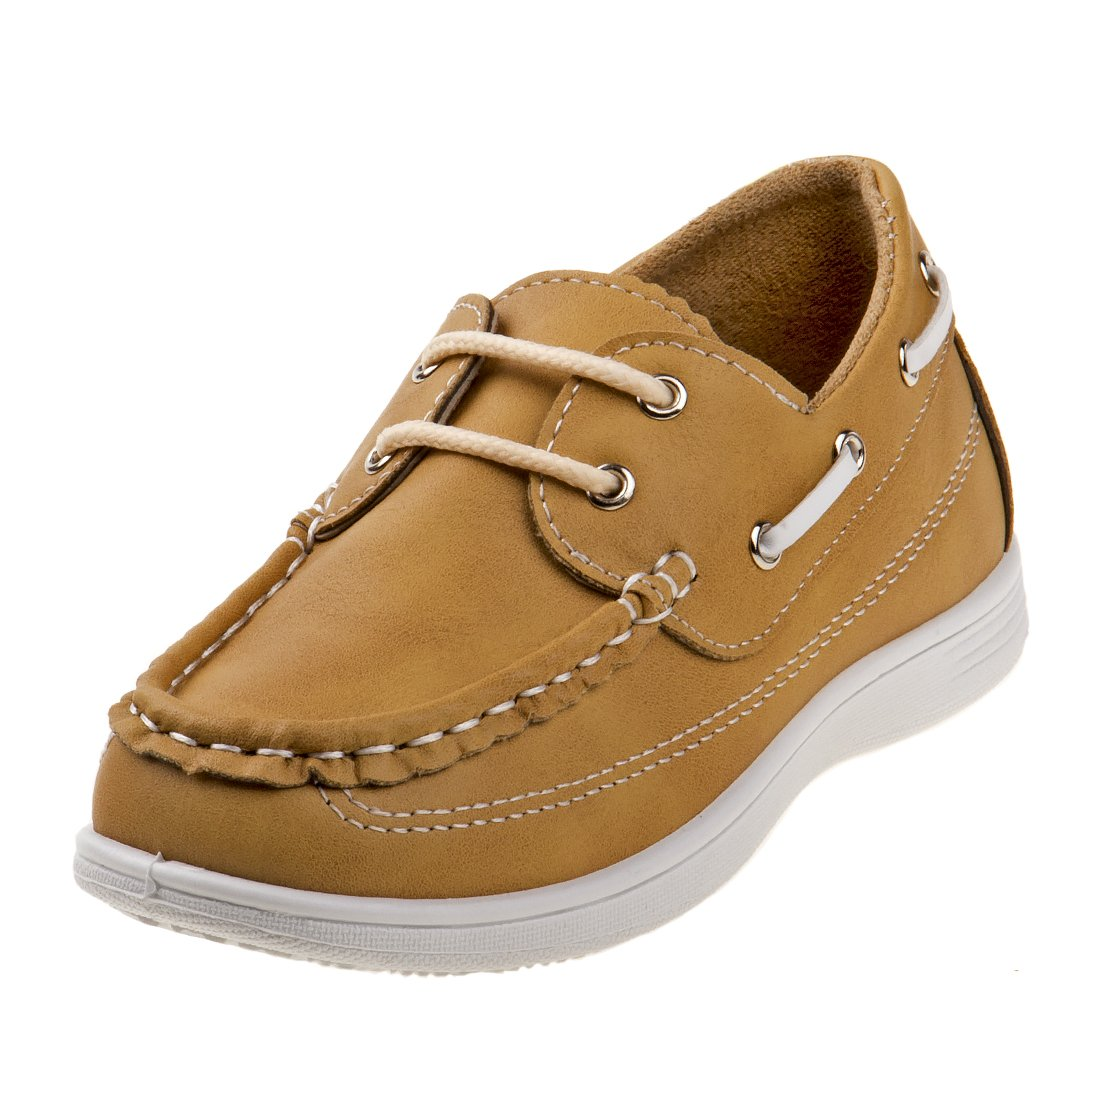 Josmo Boys Boat Shoes, Tan/White, 12 M US Little Kid